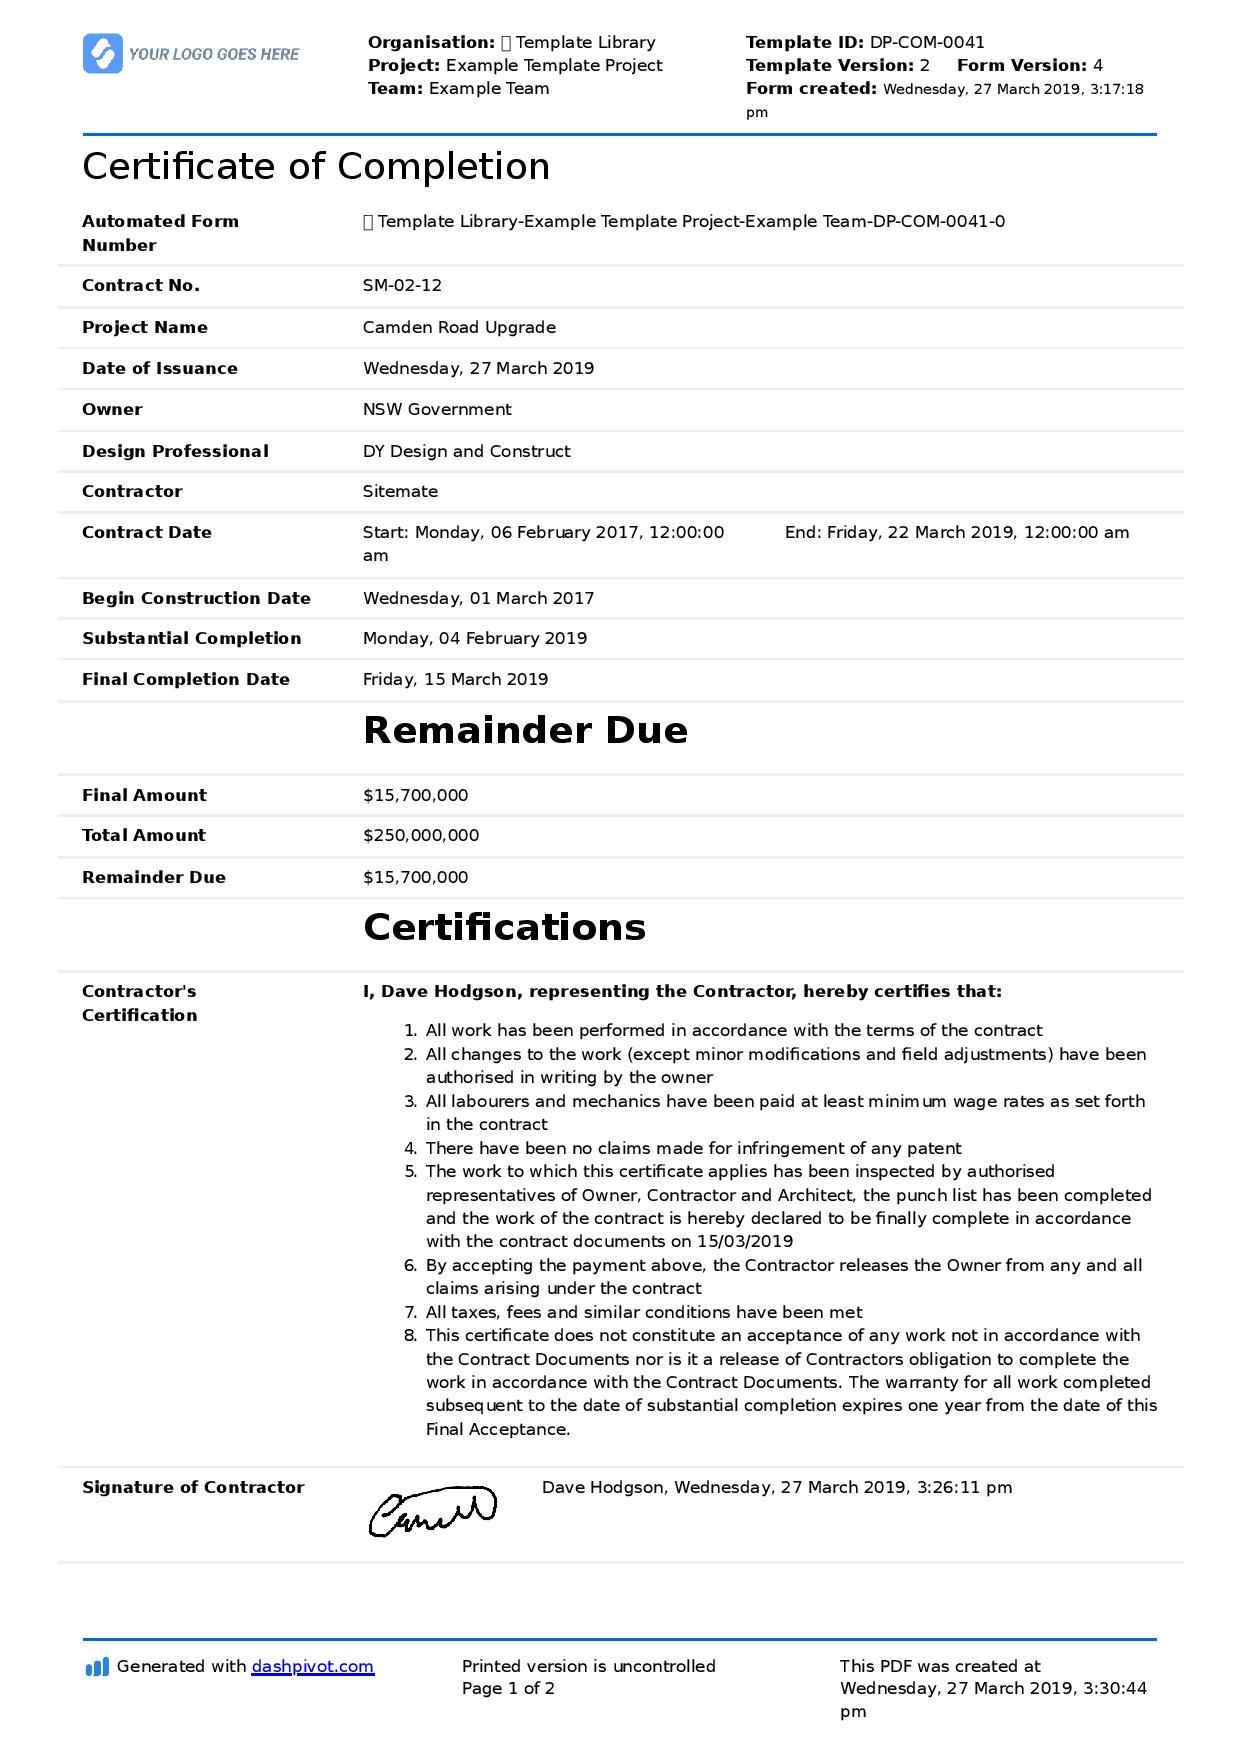 Certificate Of Completion For Construction Free Template  Sample In Certificate Of Completion Construction Templates